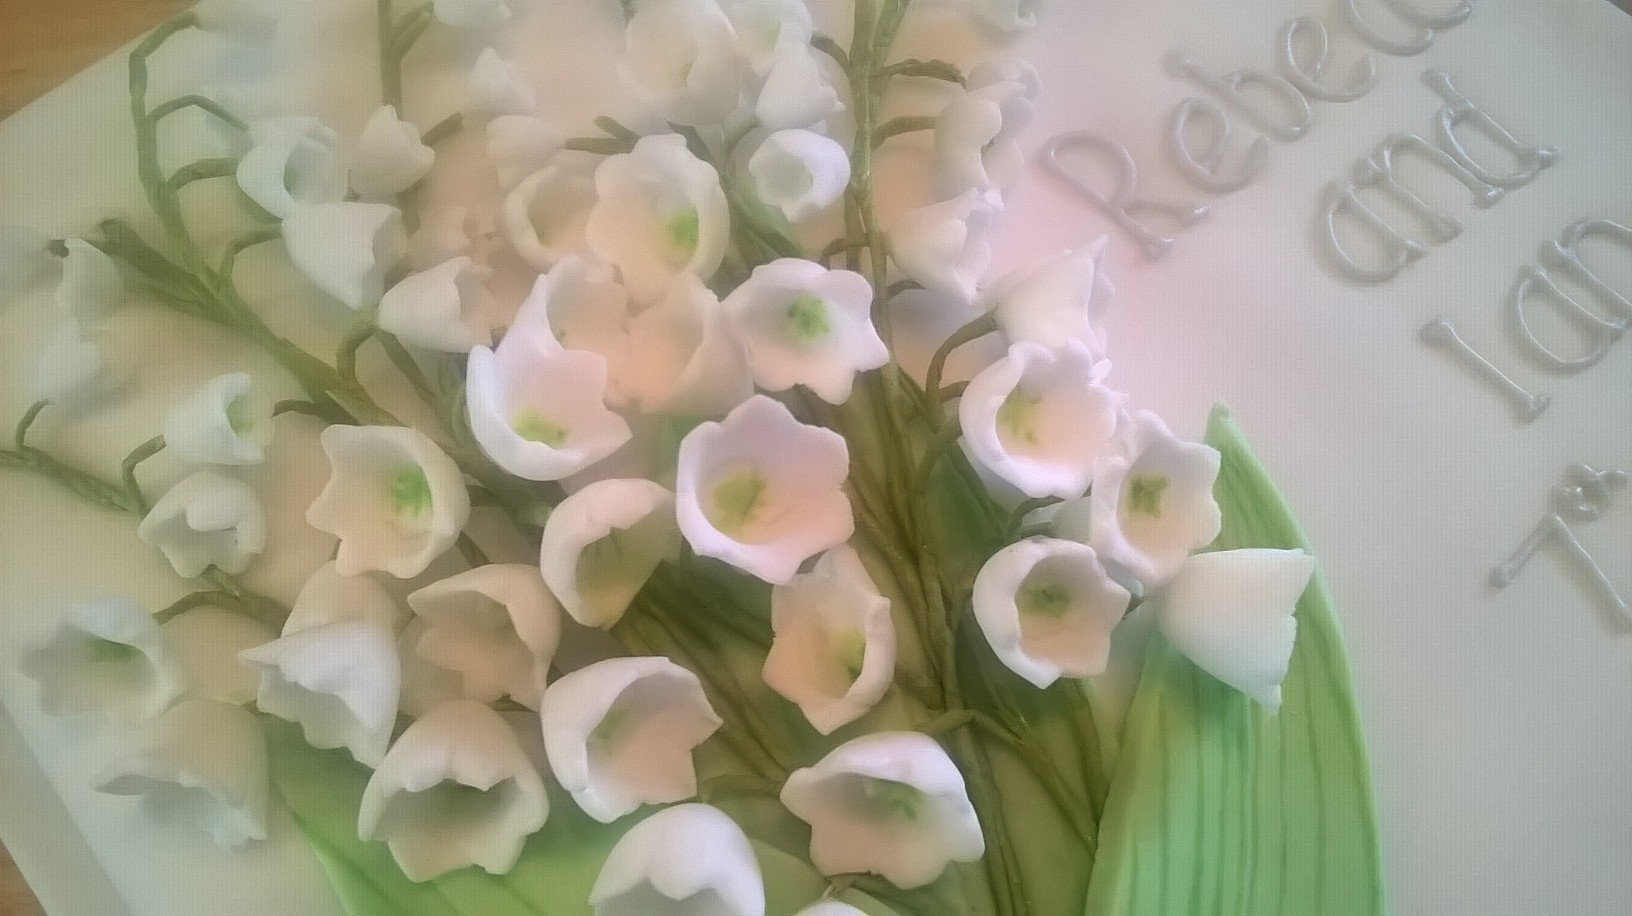 Close up of the lily of the valley flowers